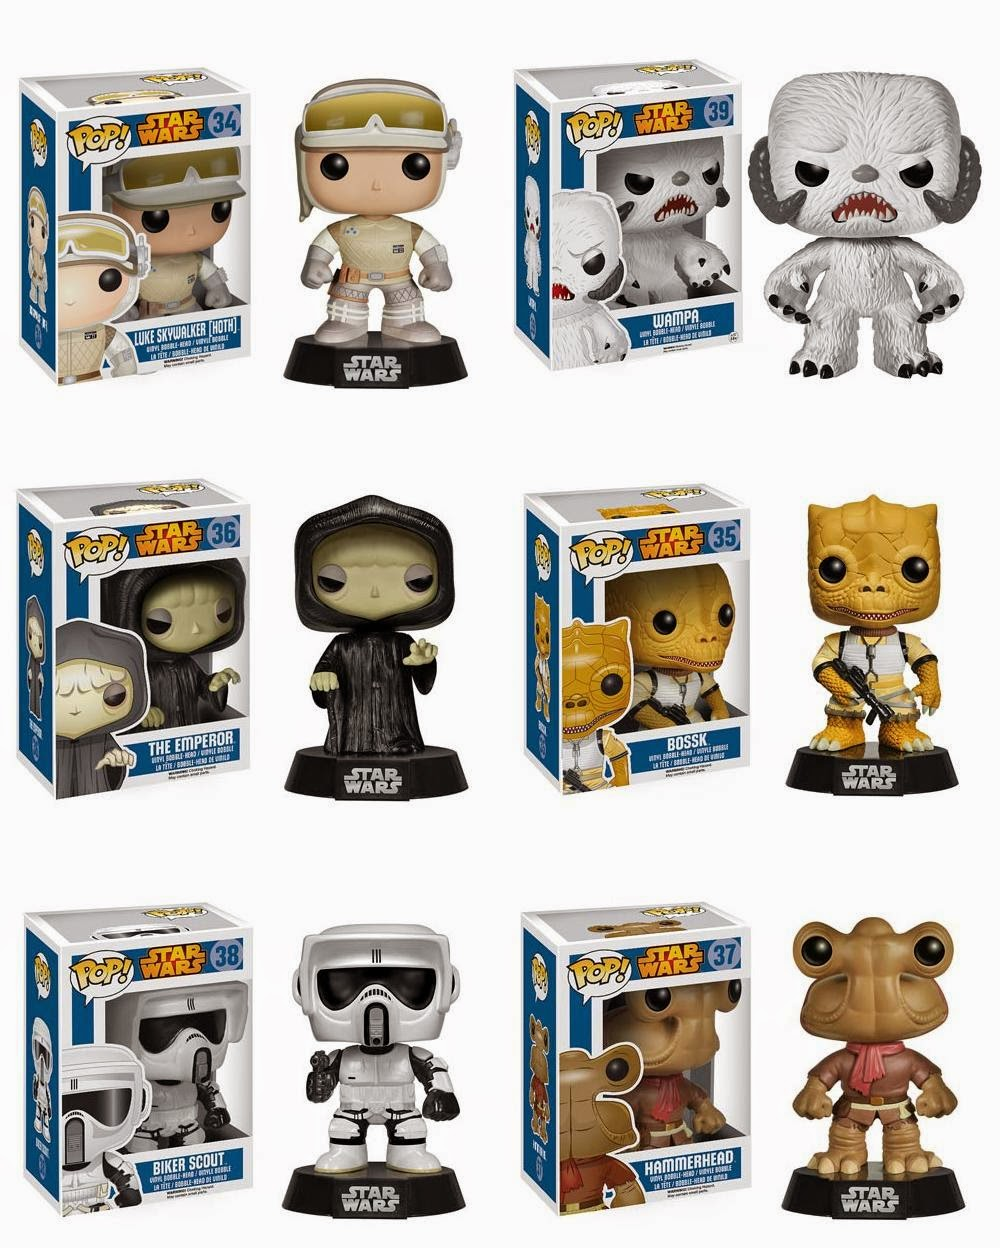 Star Wars Pop! Series 5 Vinyl Figures by Funko - Hoth Luke Skywalker, Wampa, The Emperor, Bossk, Biker Scout & Hammerhead